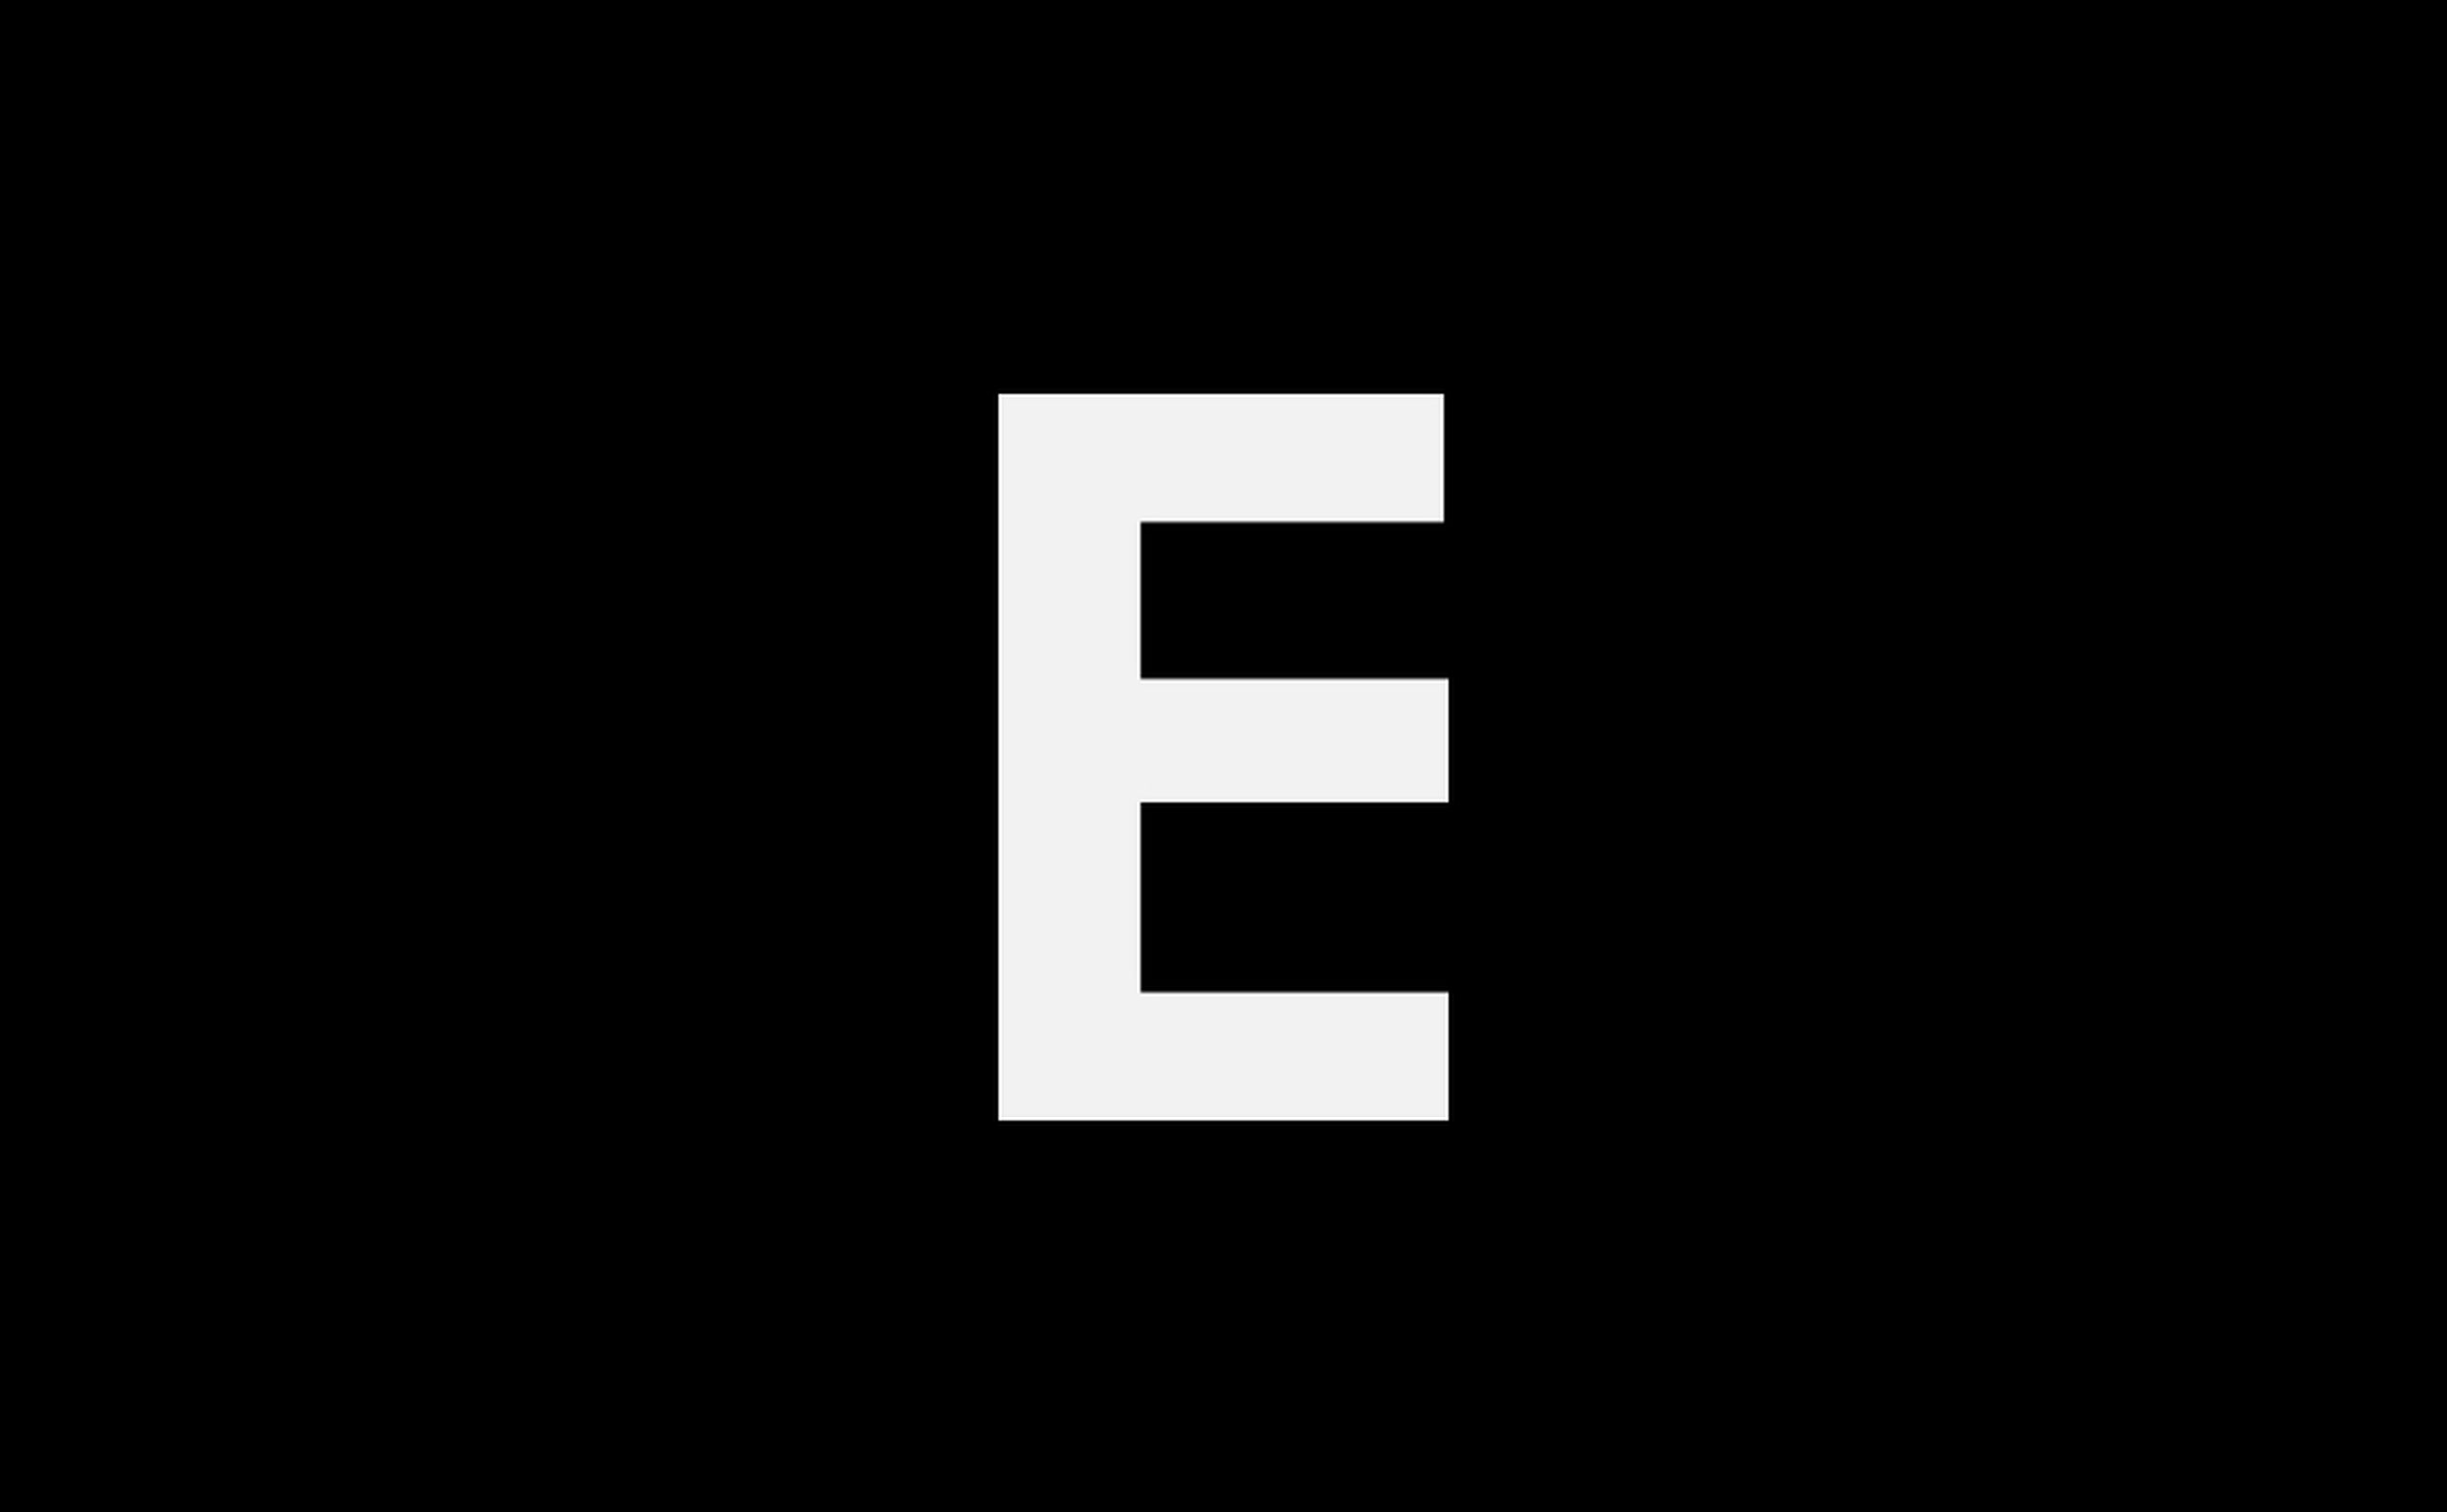 plant, tree, growth, black and white, nature, land, field, no people, monochrome photography, built structure, woodland, architecture, grass, monochrome, day, rural area, tranquility, beauty in nature, landscape, building, building exterior, house, outdoors, tranquil scene, forest, branch, sky, environment, scenics - nature, leaf, sunlight, black, non-urban scene